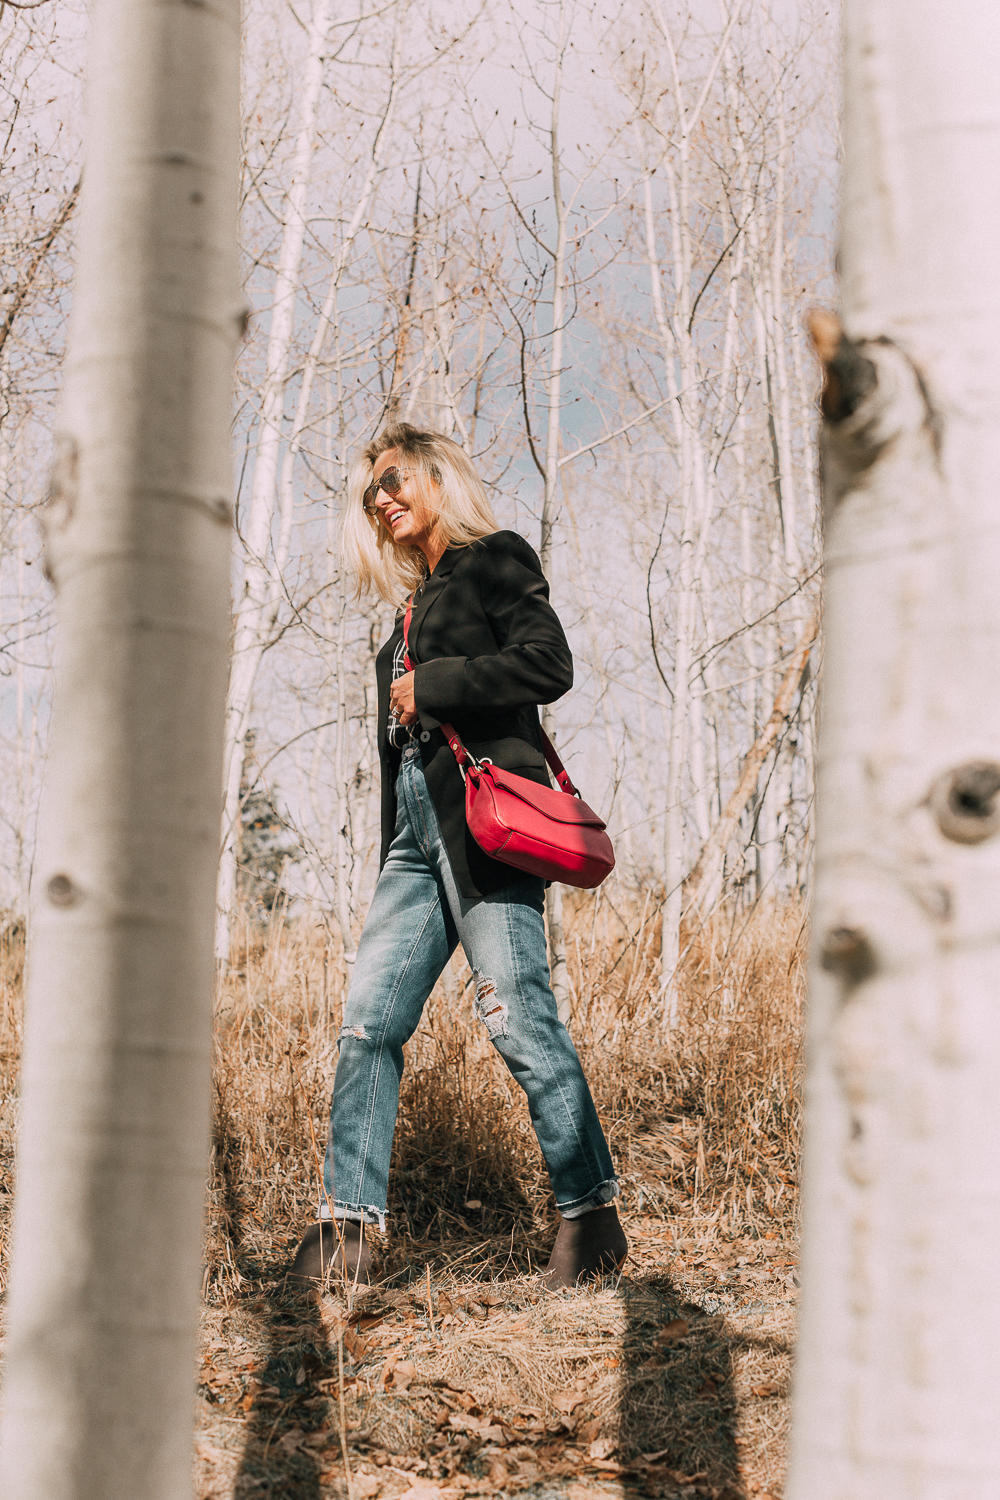 Bootie Trend, styling gray suede short ankle boots by Vince Camuto with Mother cropped jeans, rails black and white plaid shirt, black donna karen blazer and a red crossbody bag on fashion blogger Erin Busbee